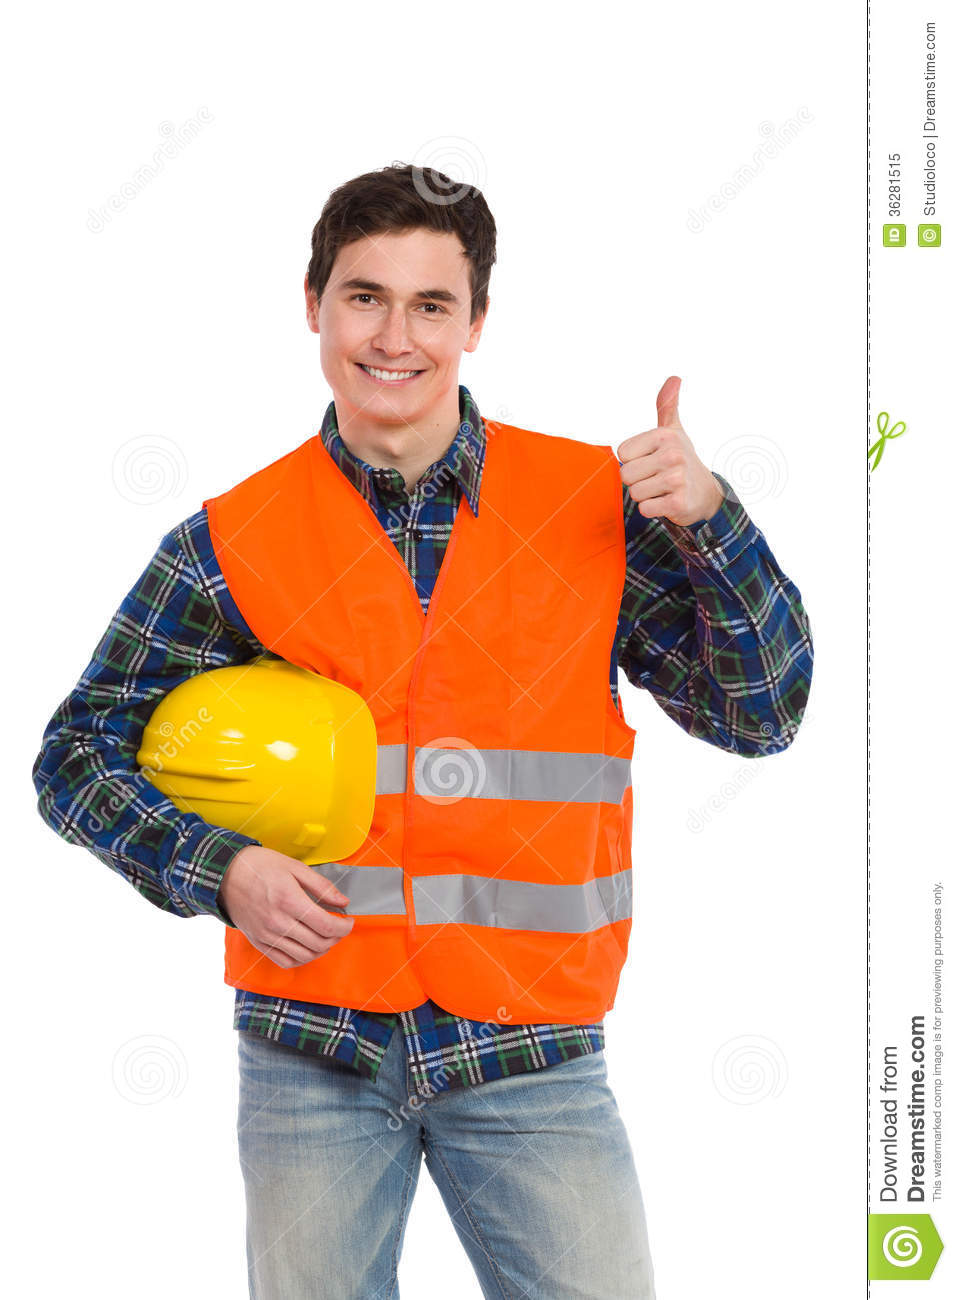 engineer wearing reflective clothing and showing thumb up  royalty free stock photo